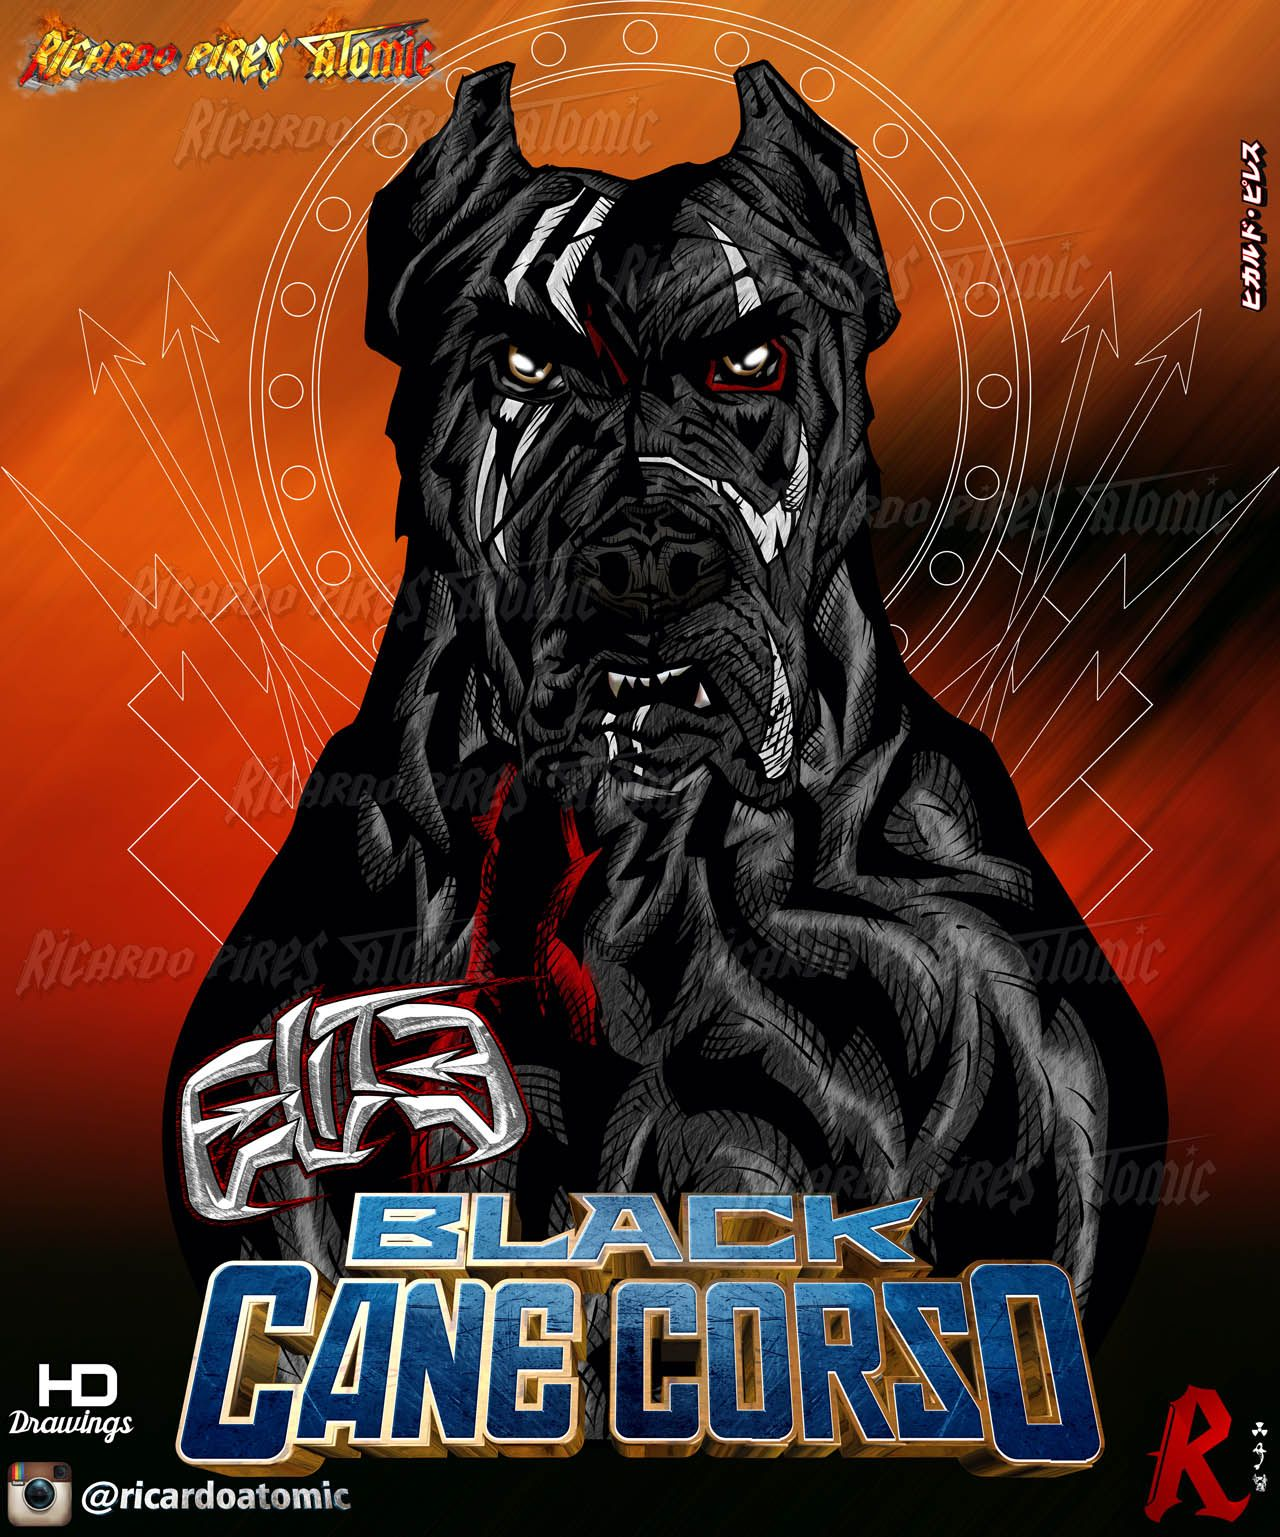 Black cane corso color new cane corso drawings creations by ricardo black cane corso color new cane corso drawings creations by ricardo pires ricardoatomic orders designs geenschuldenfo Images